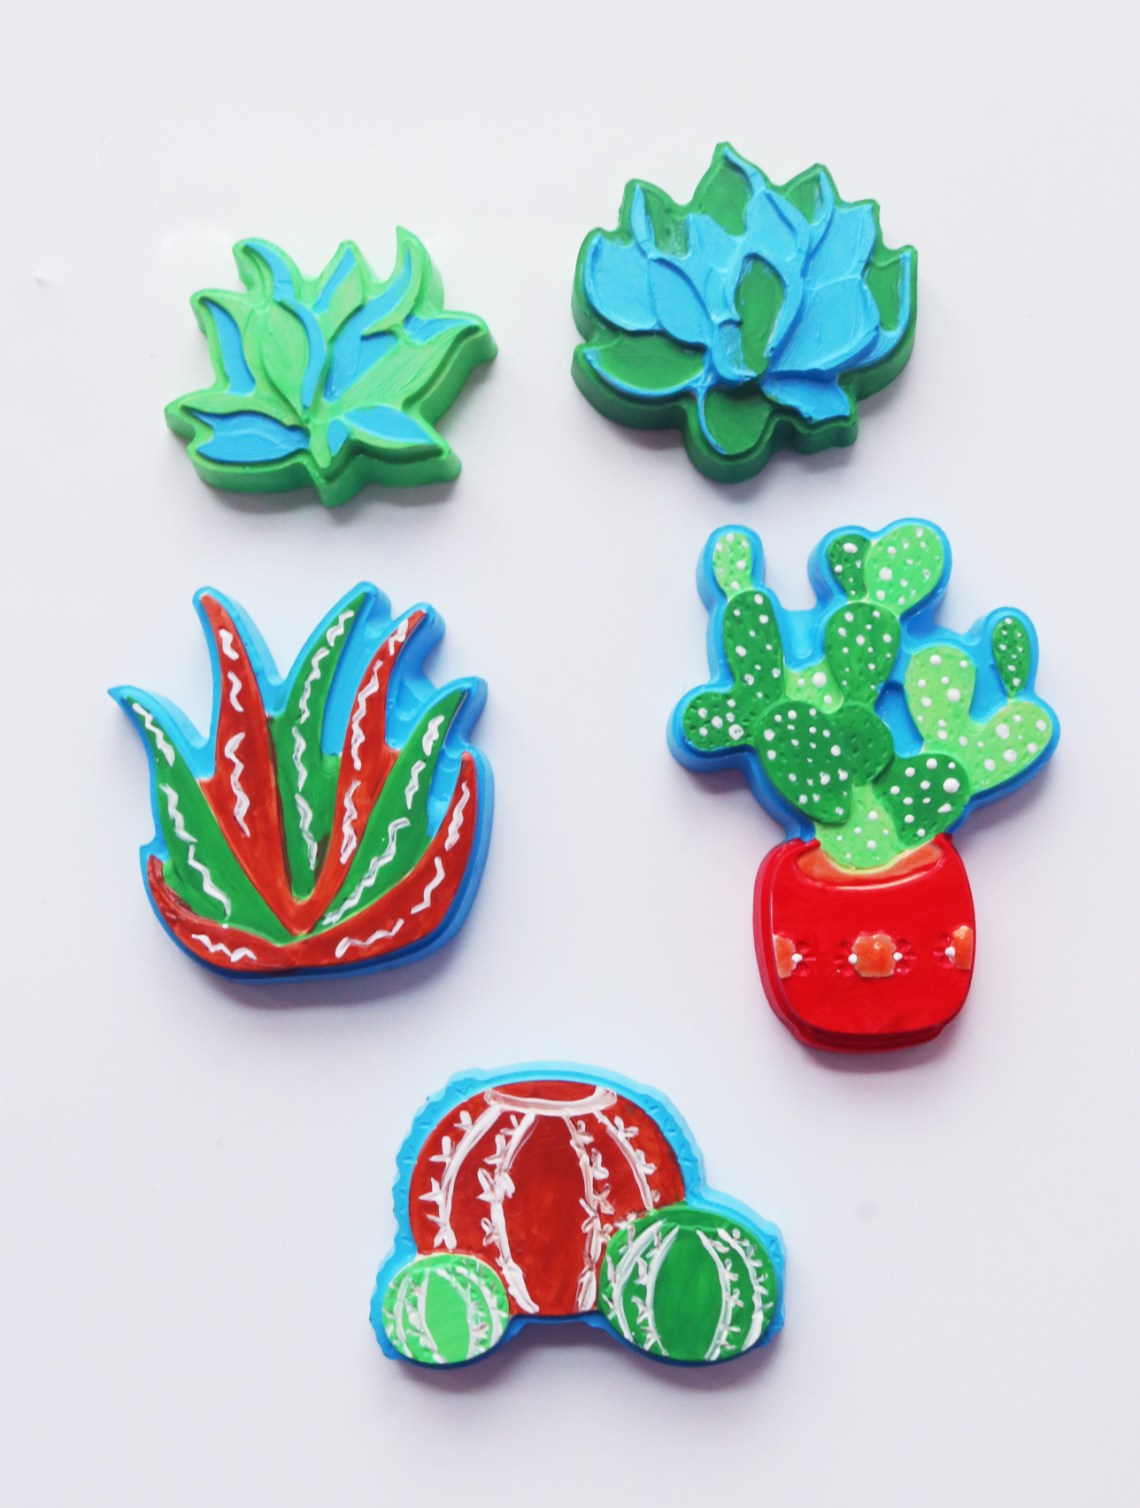 Plaster Succulent DIY Homemade Craft with Activa Products